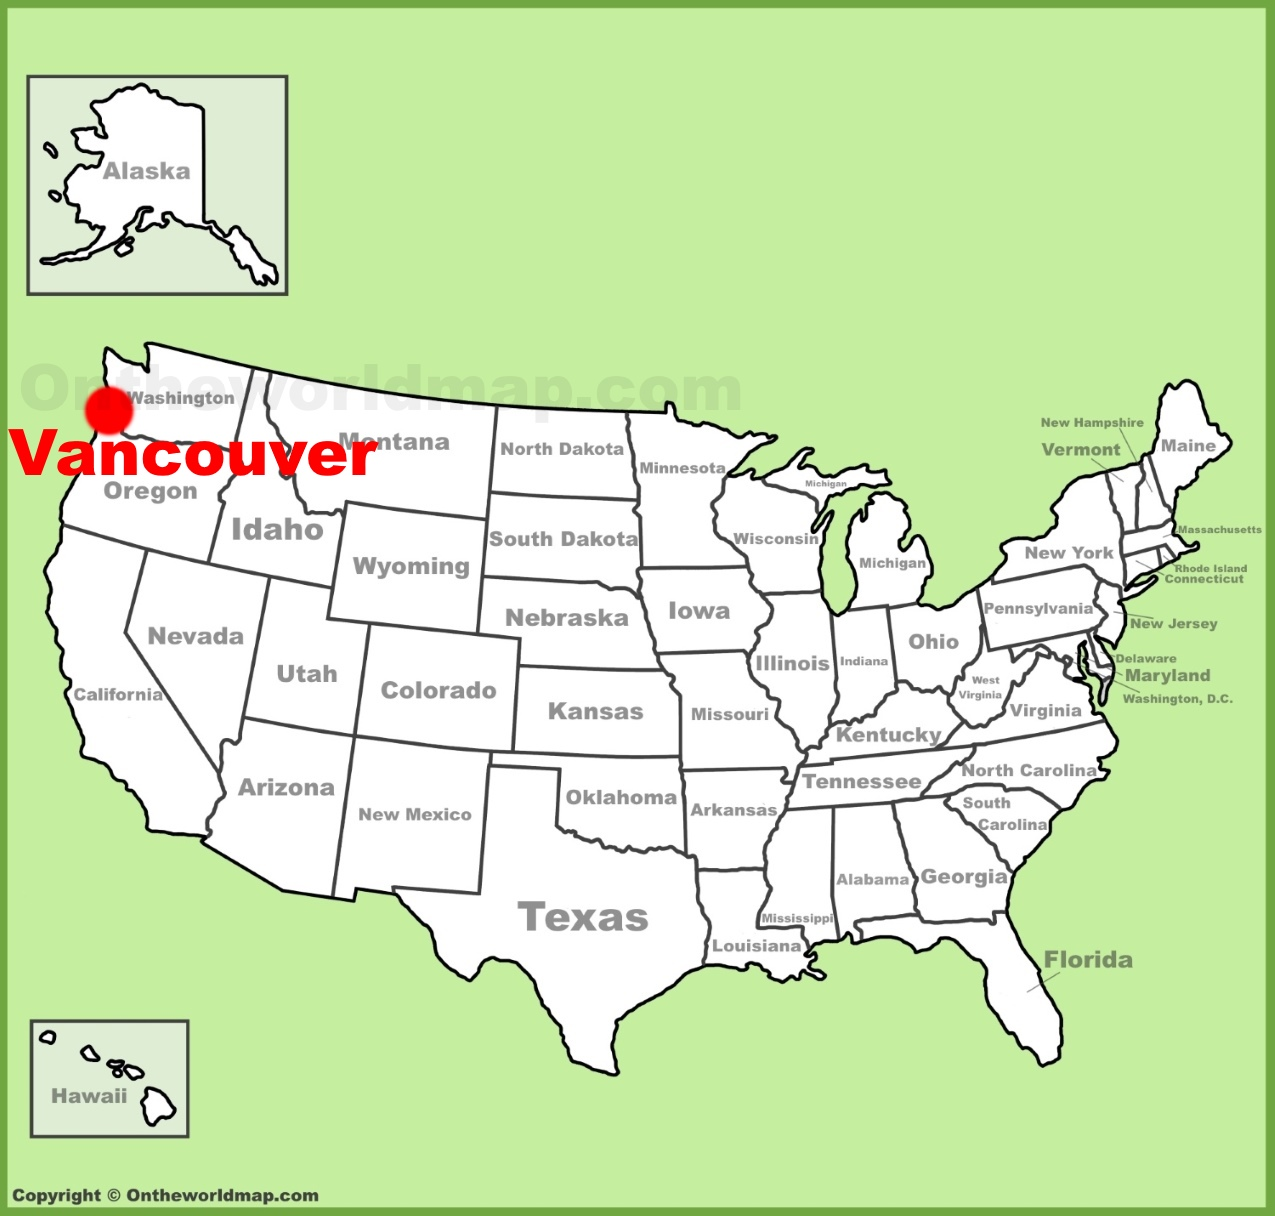 Vancouver location on the US Map